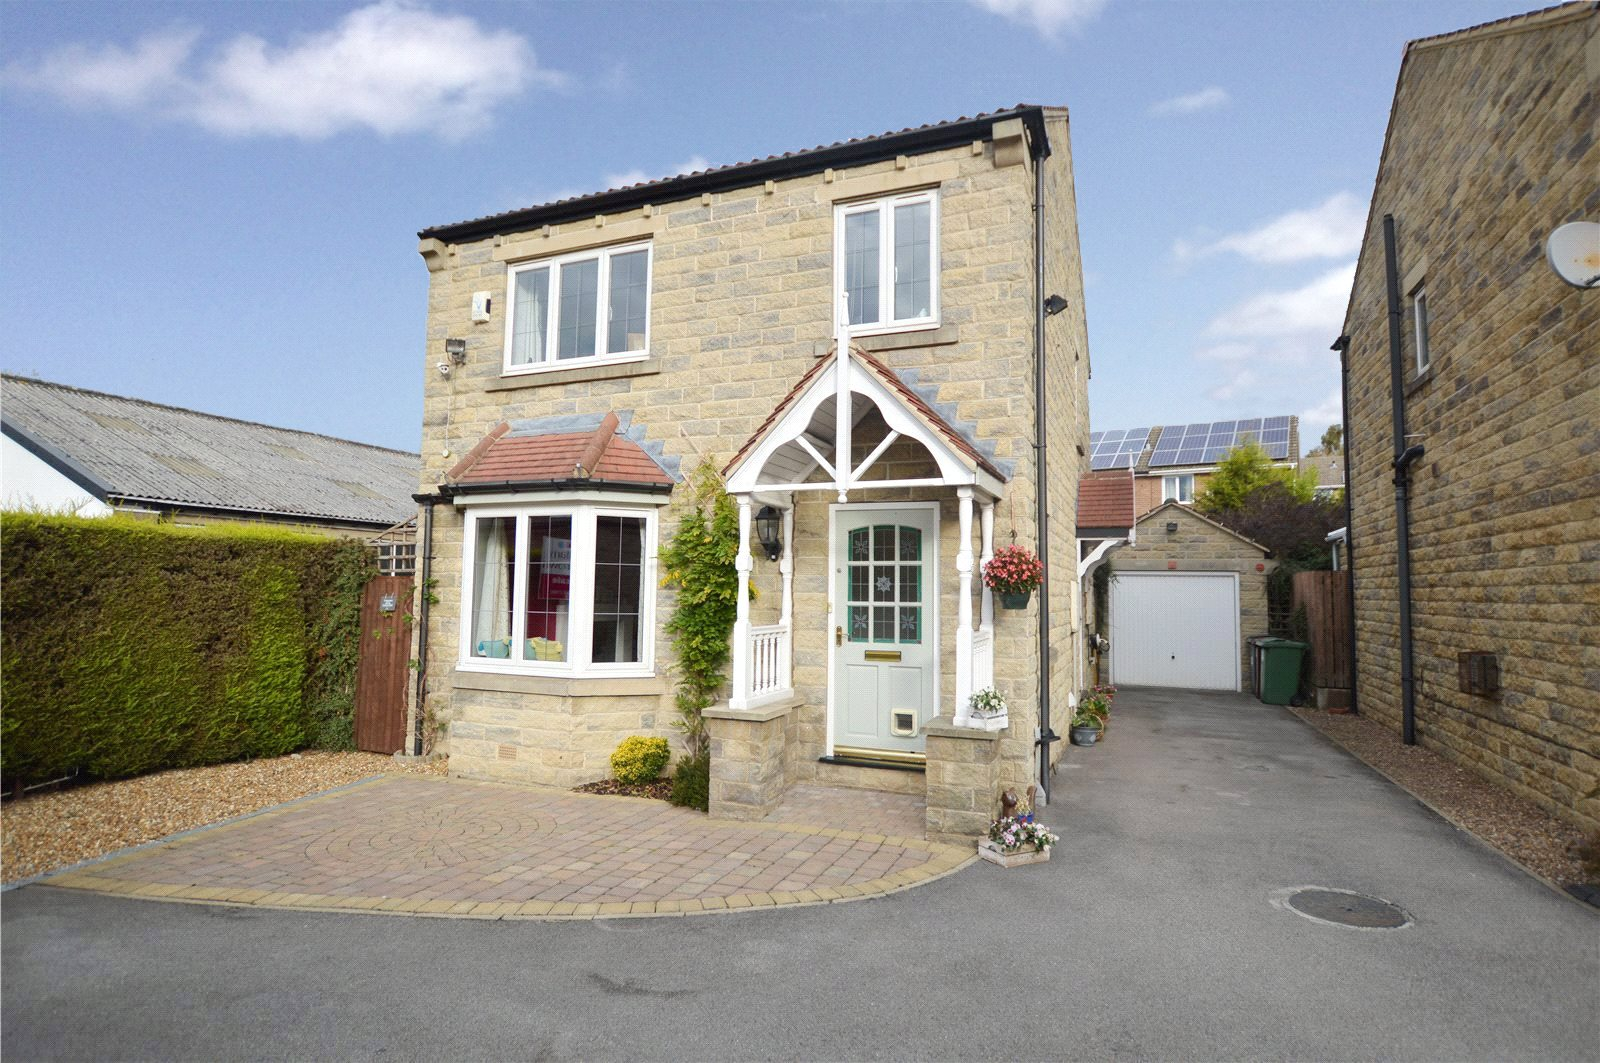 property for sale in Pudsey, exterior sandstone detached house